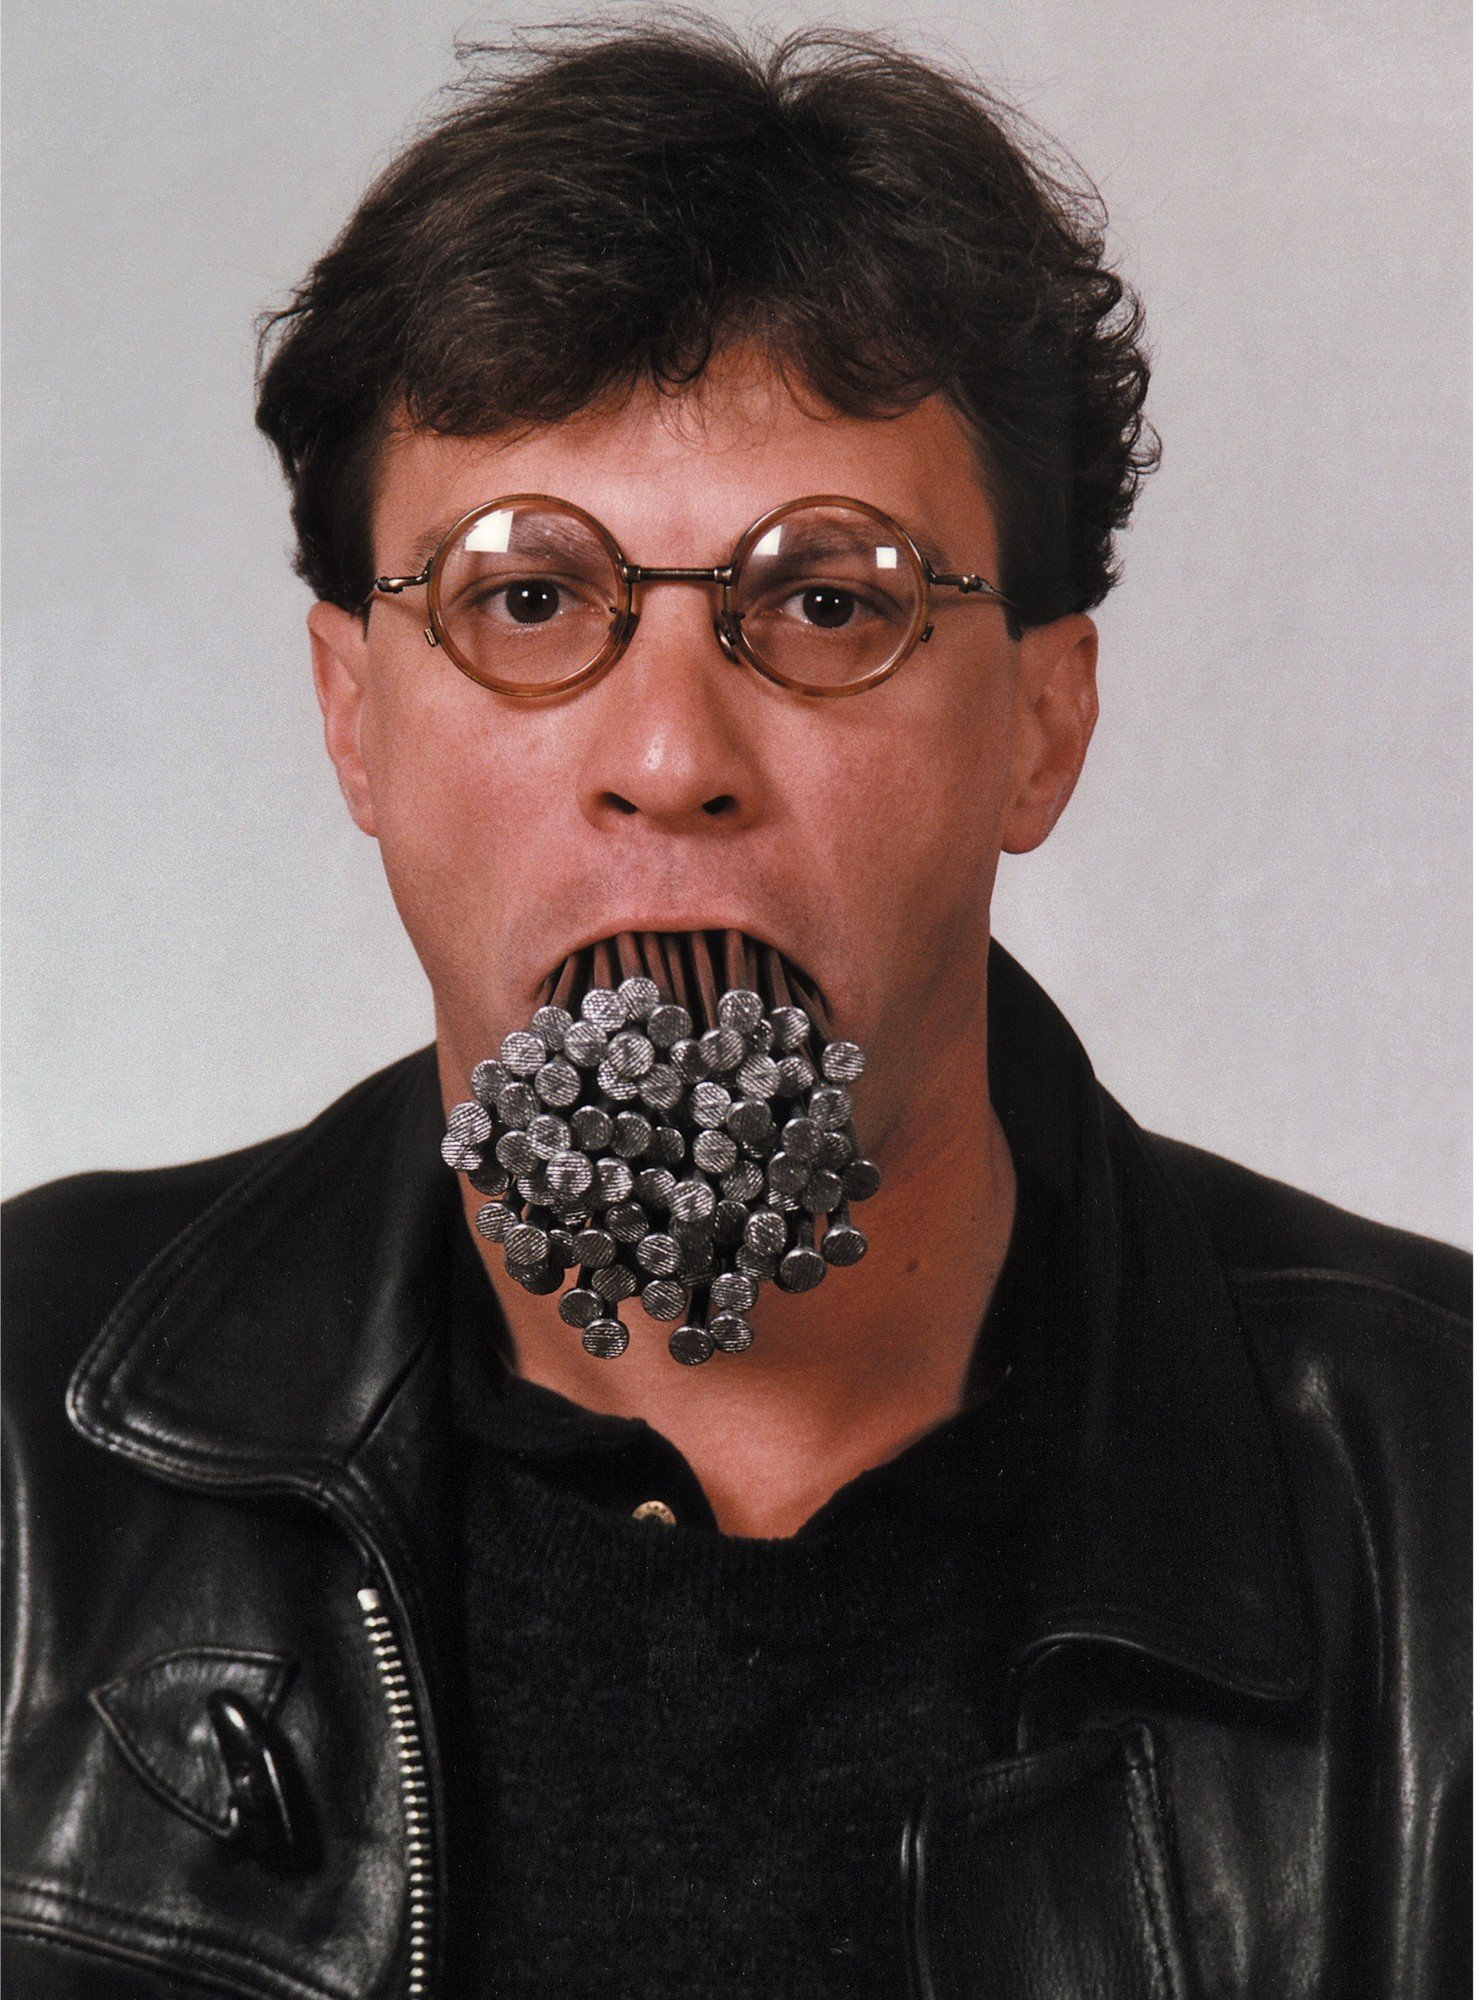 How many nails in the mouth? Self-portrait with 2kg 12.5 cm long nails in the mouth, 1992-1995, by Luchezar Boyadjiev